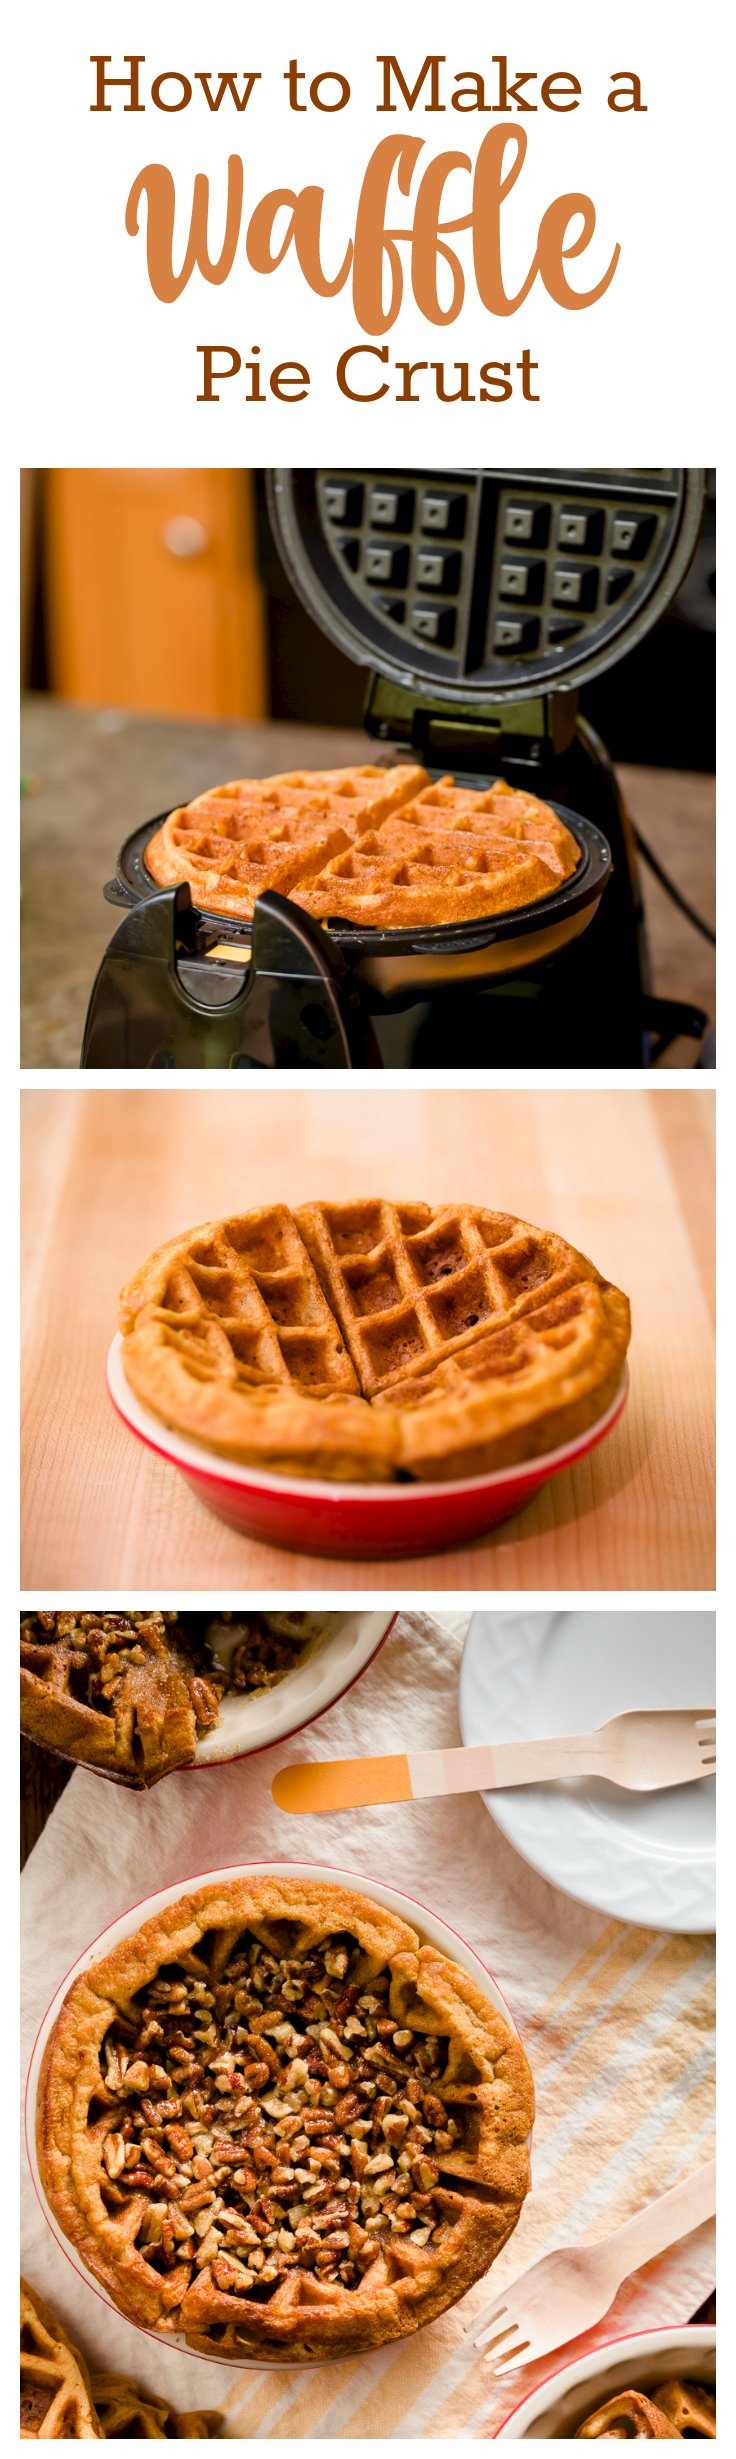 How to Make Waffle Pie Crust and Change Your Pies Forever